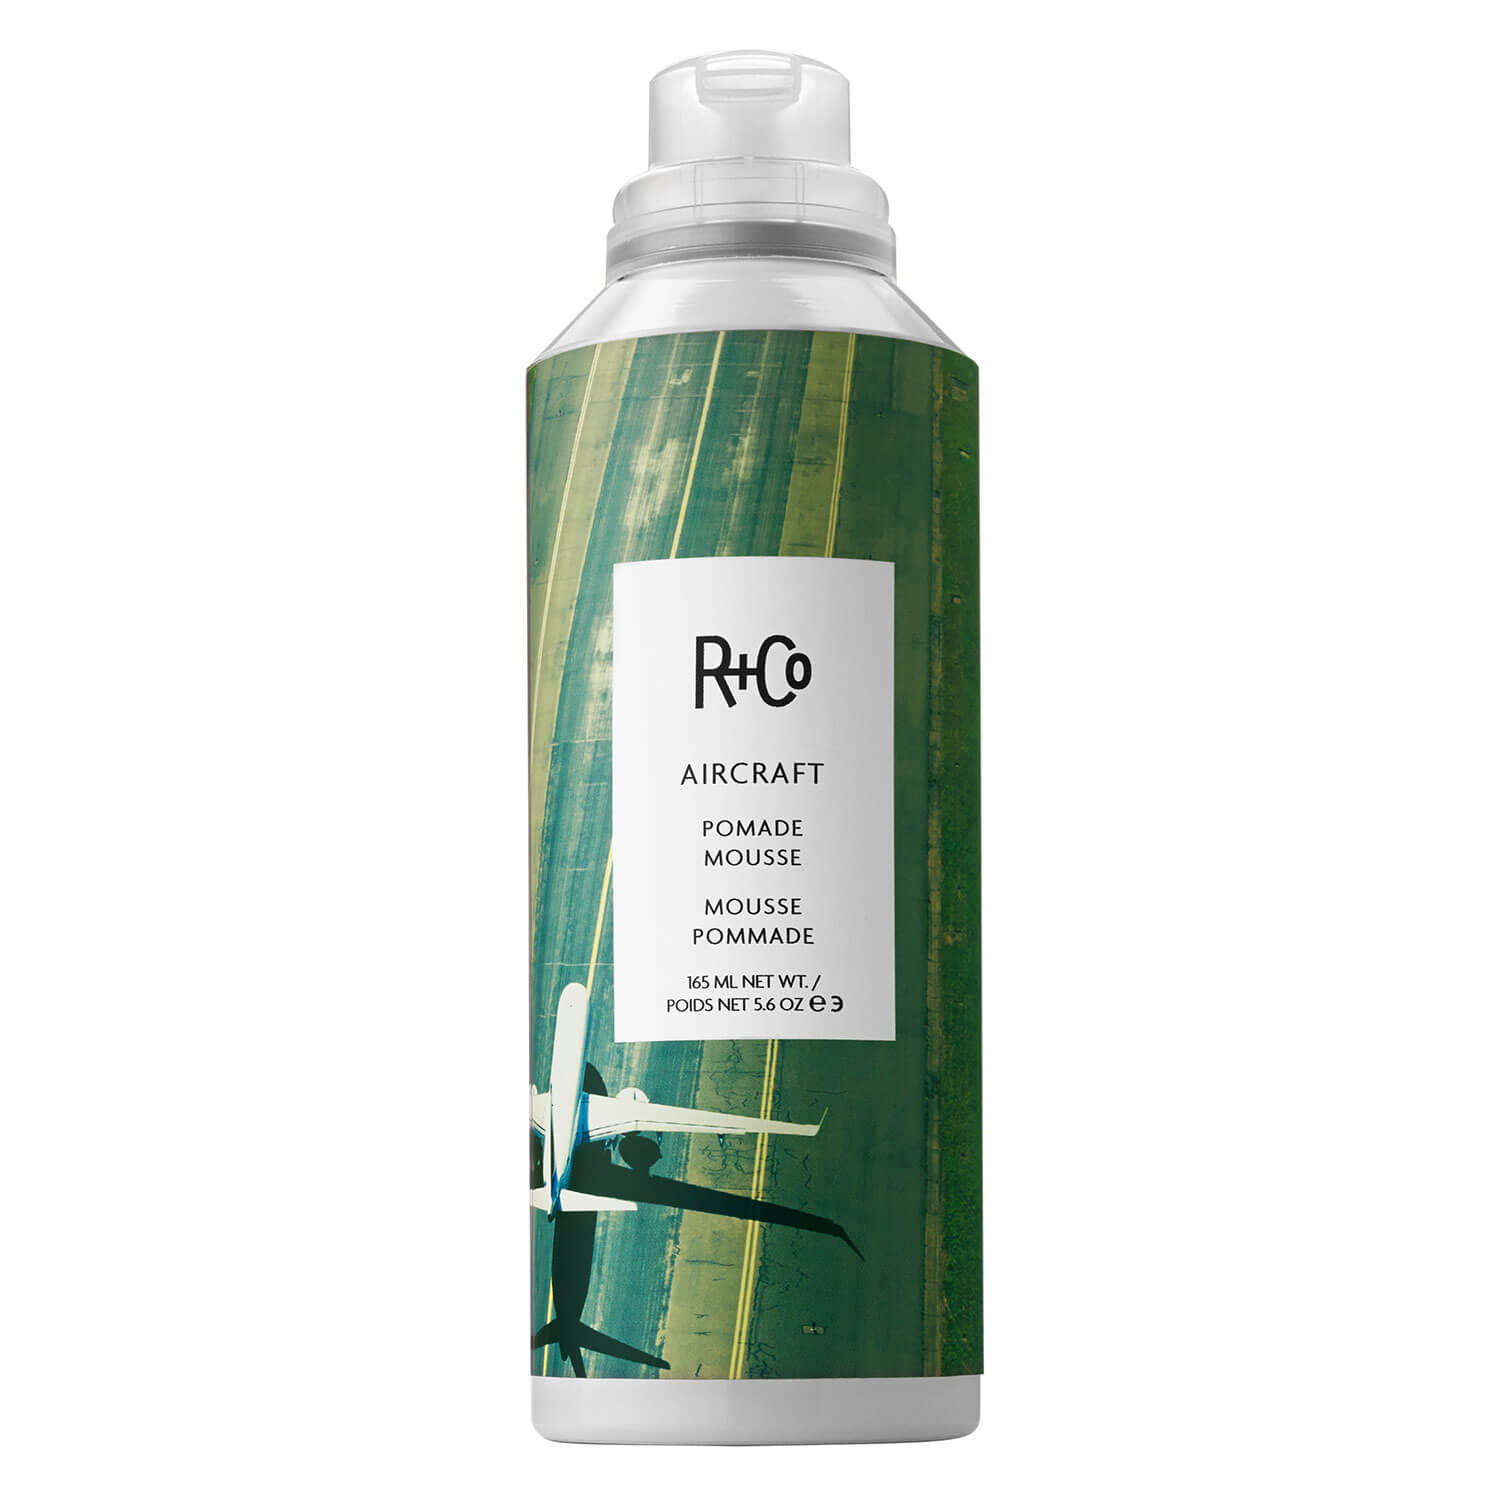 R+Co - Aircraft Pomade Mousse - 165ml